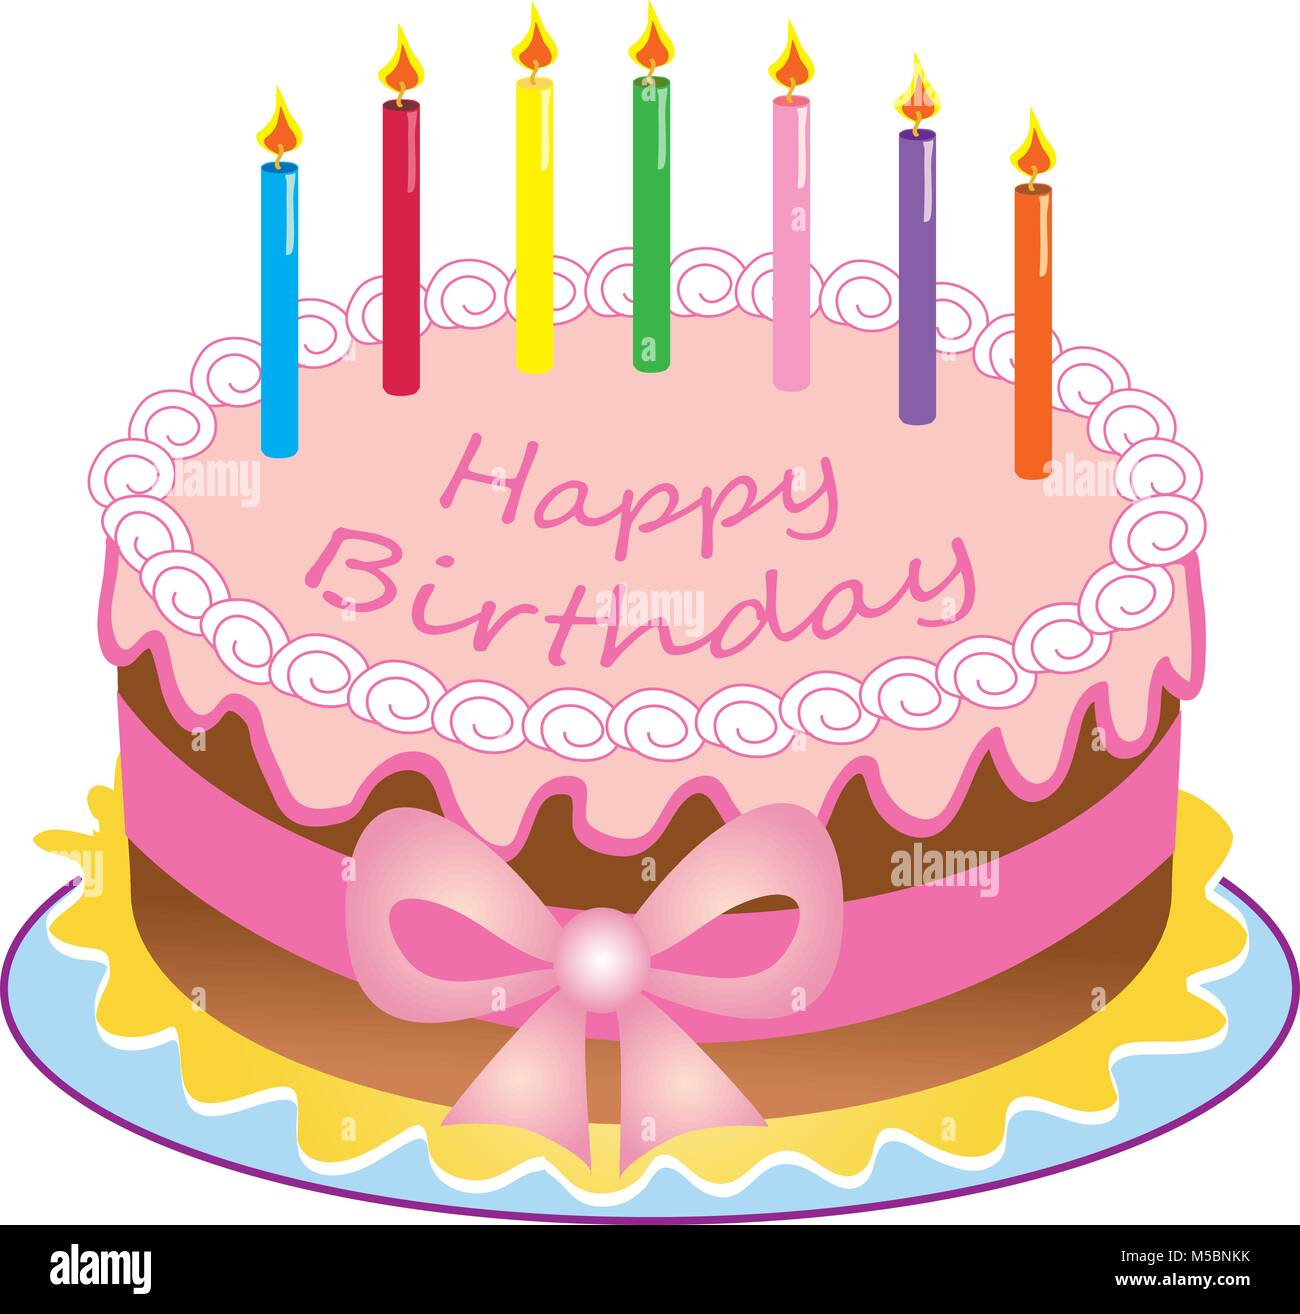 Fantastic A Cartoon Happy Birthday Cake With Colored Candles Sugar Icing Funny Birthday Cards Online Elaedamsfinfo